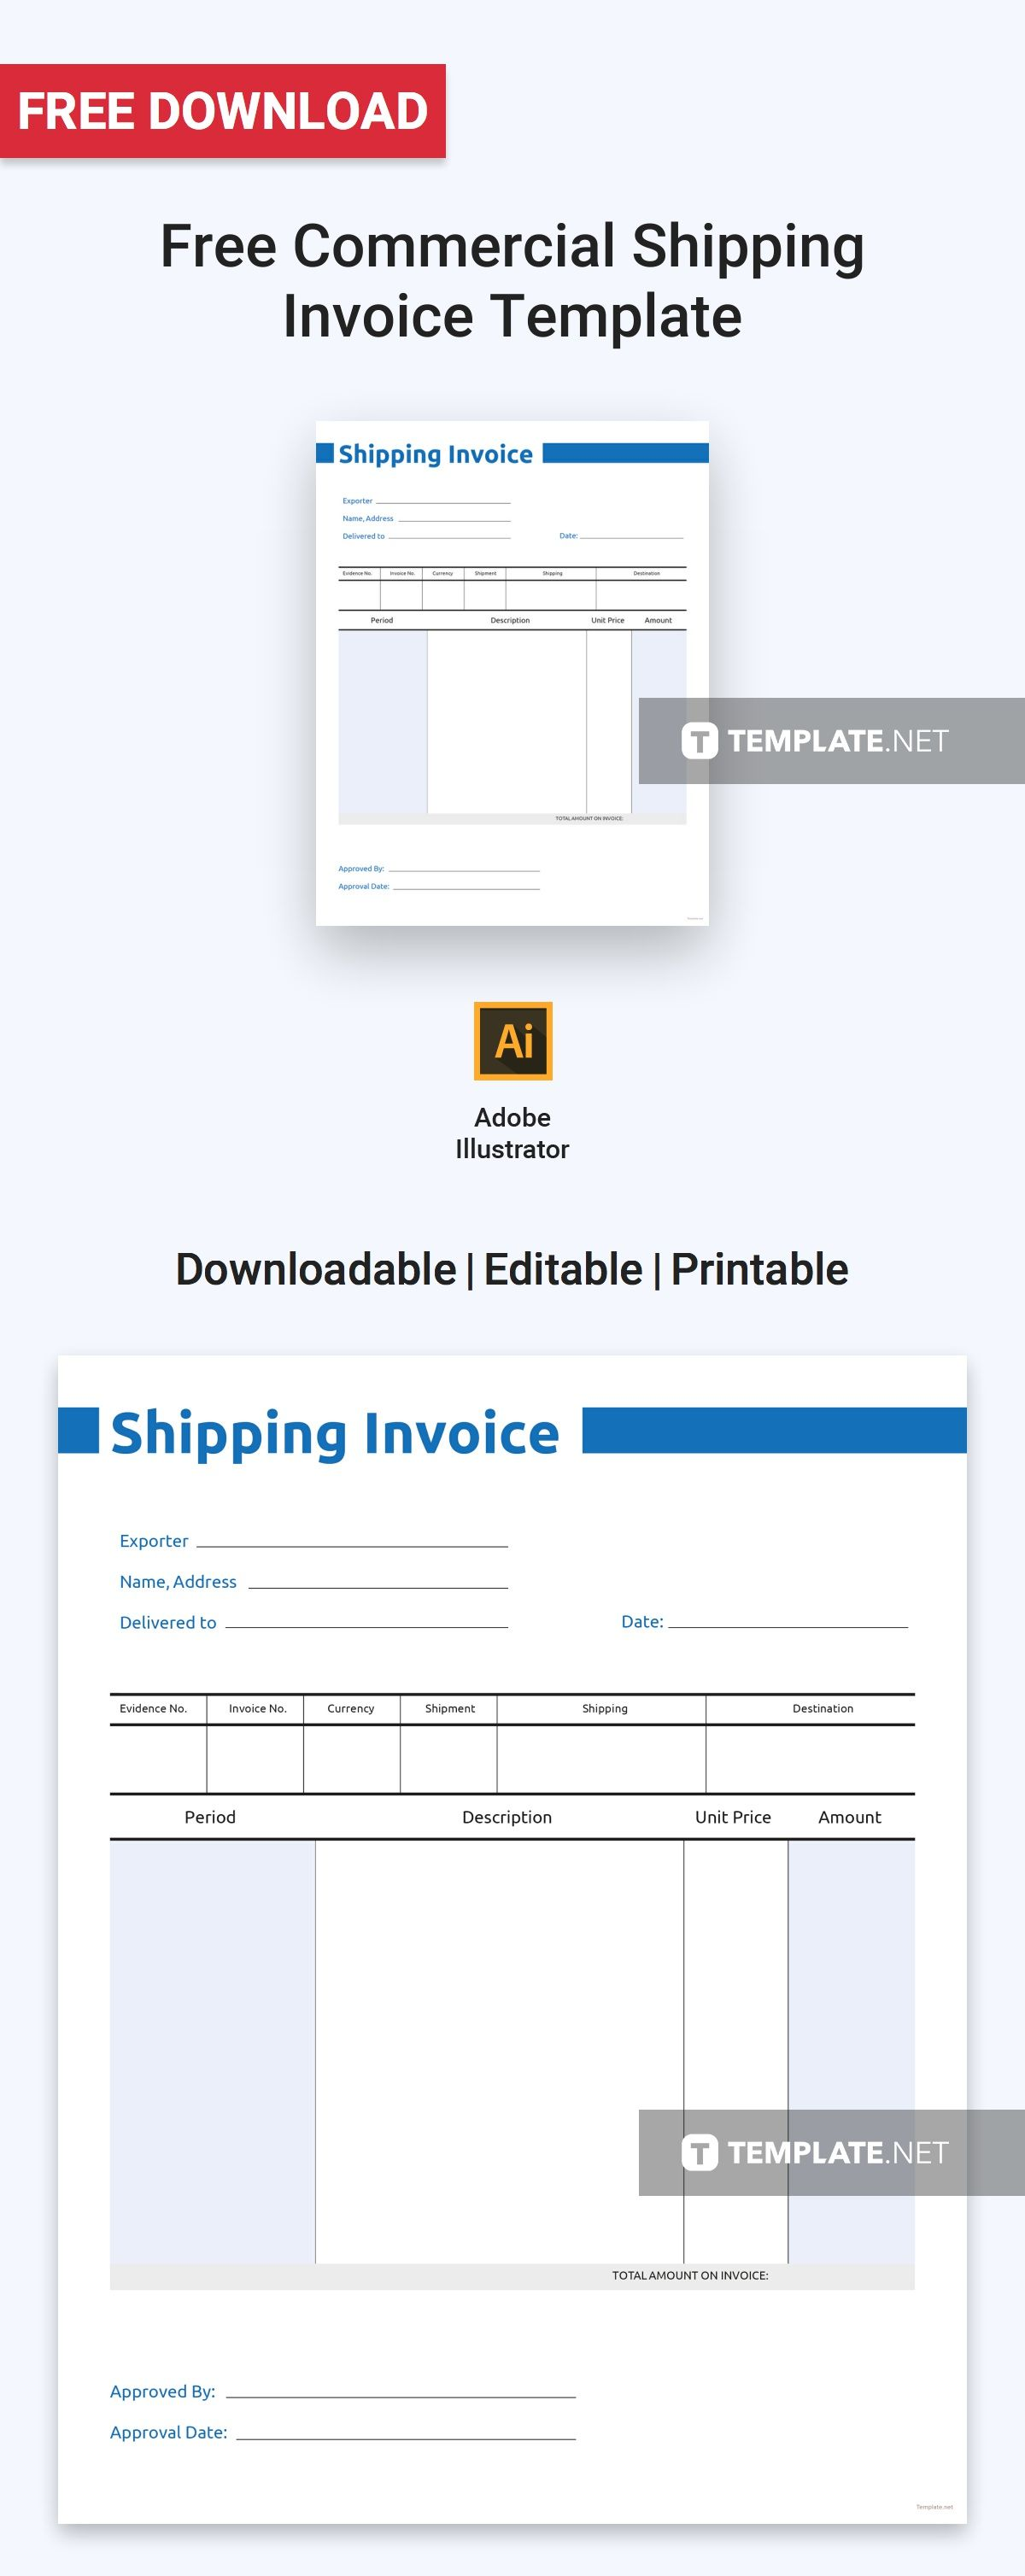 Free Commercial Shipping Invoice Invoice design template